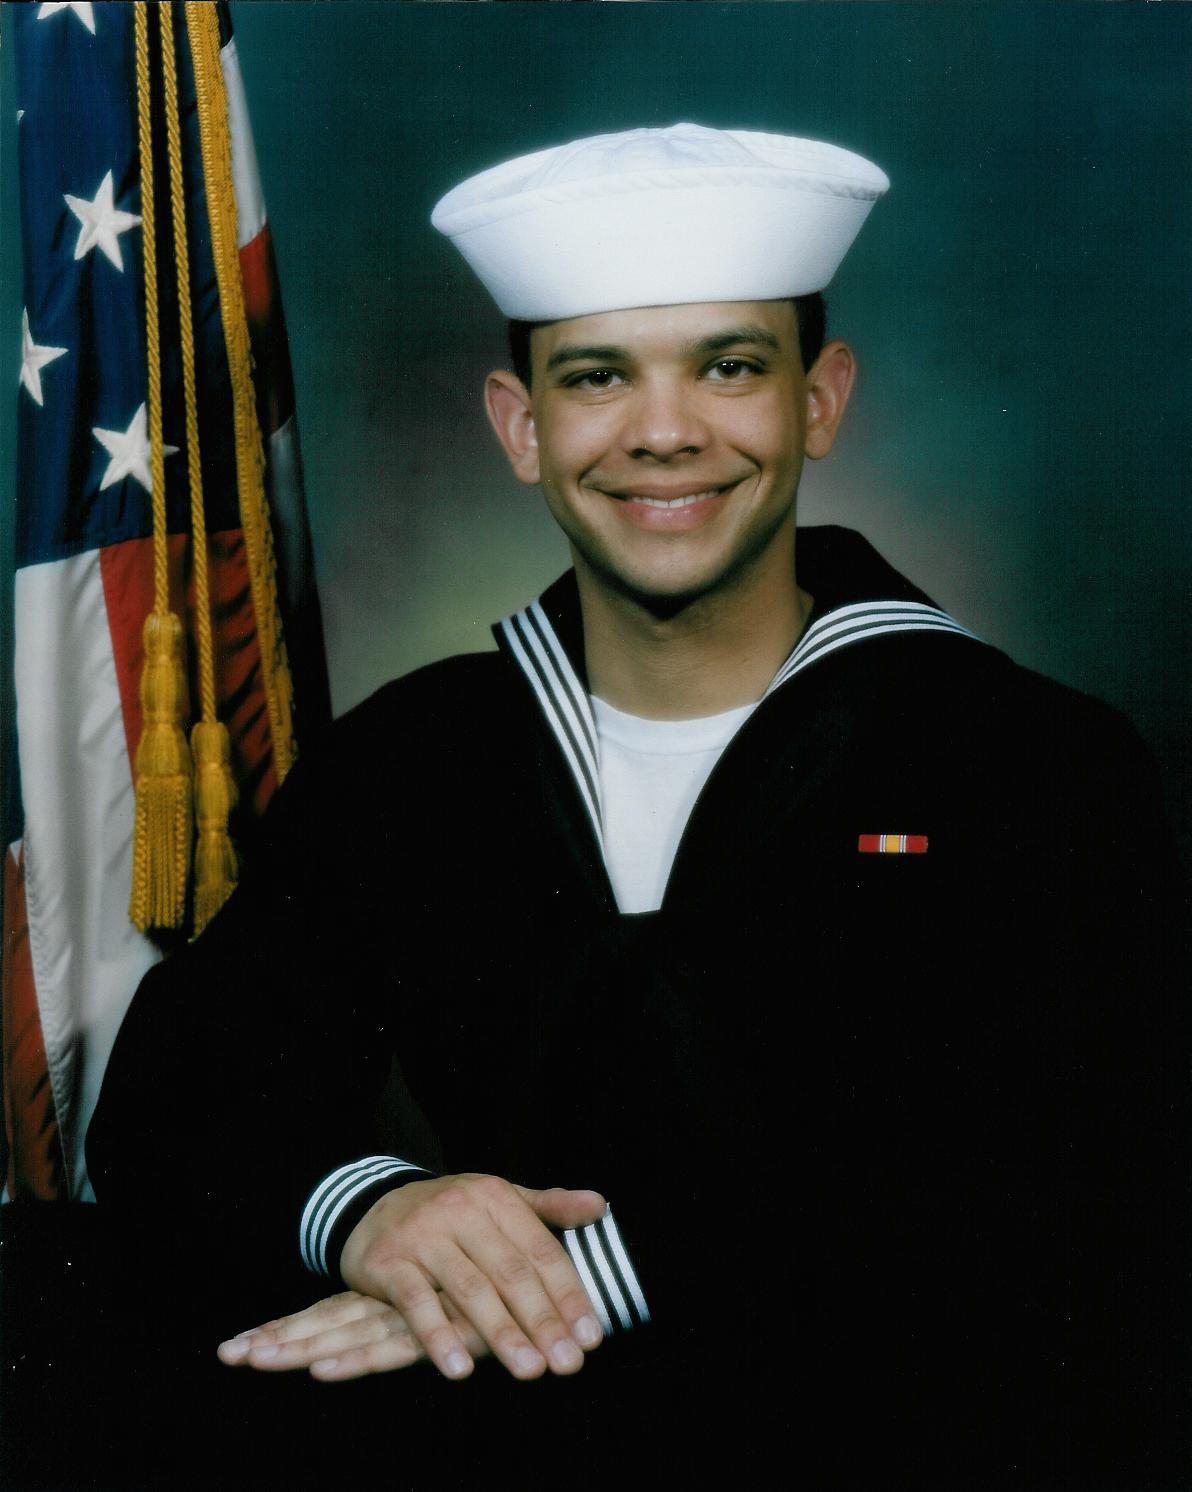 Chip LeDuff, LT - Please describe who or what influenced your decision to join the Navy?